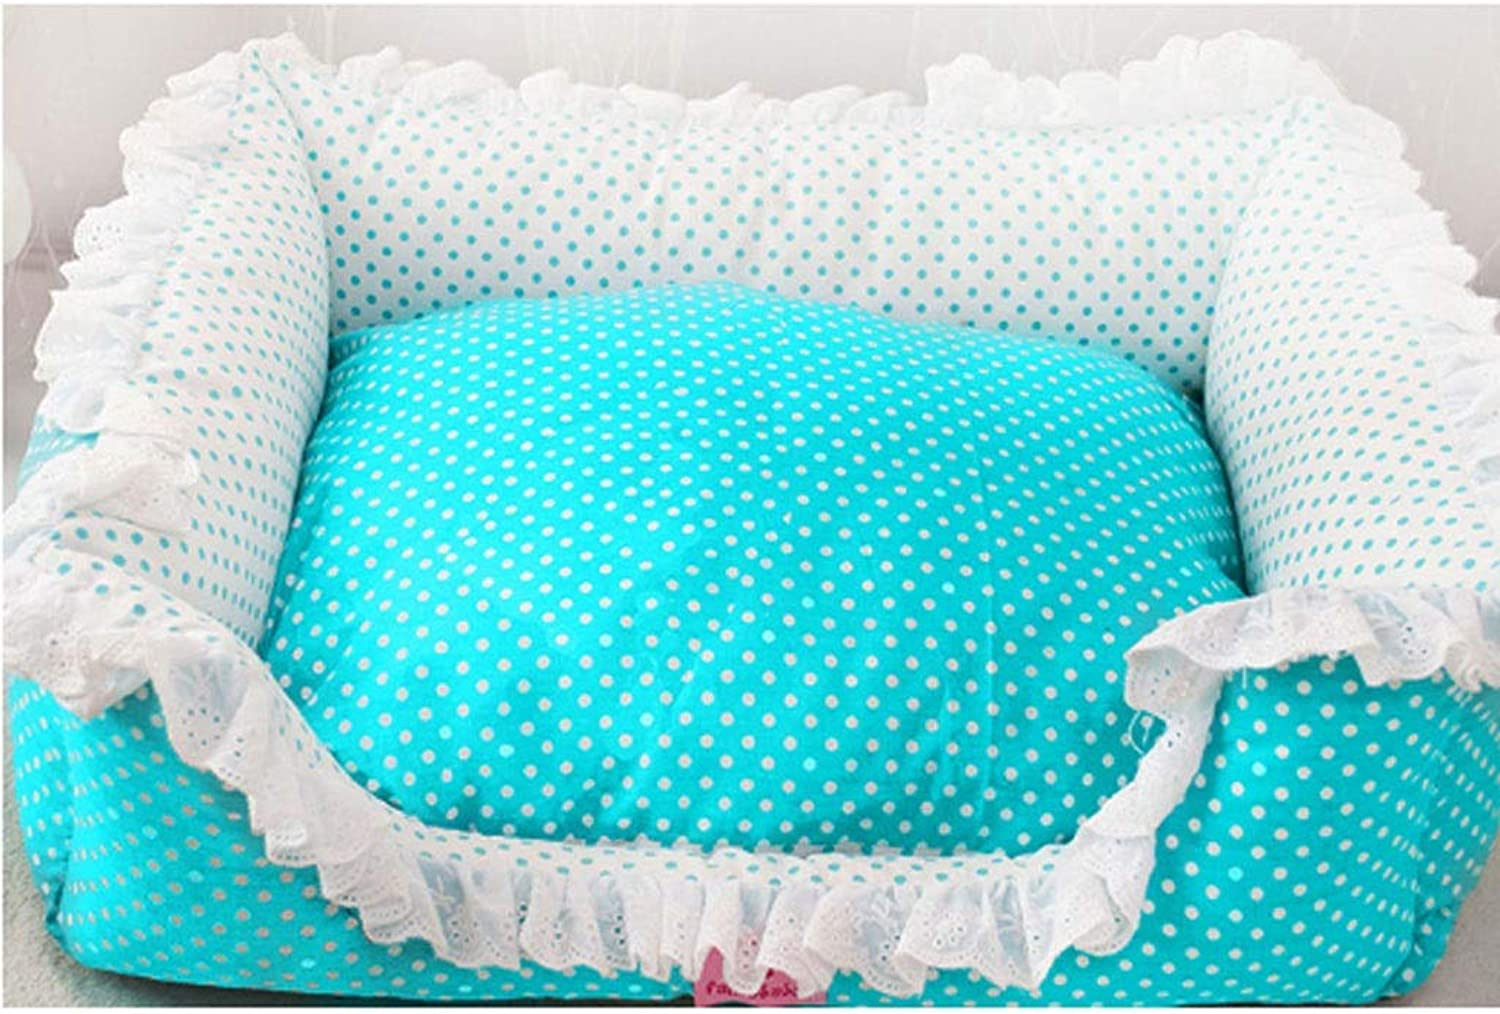 BarryL Dog Bed Cat Bed Cute Princess Fresh Polka Dot Square Pet Nest Fully Removable And Washable Luxury Pet Sofa Washable Pet Bed (color   bluee, Size   L)